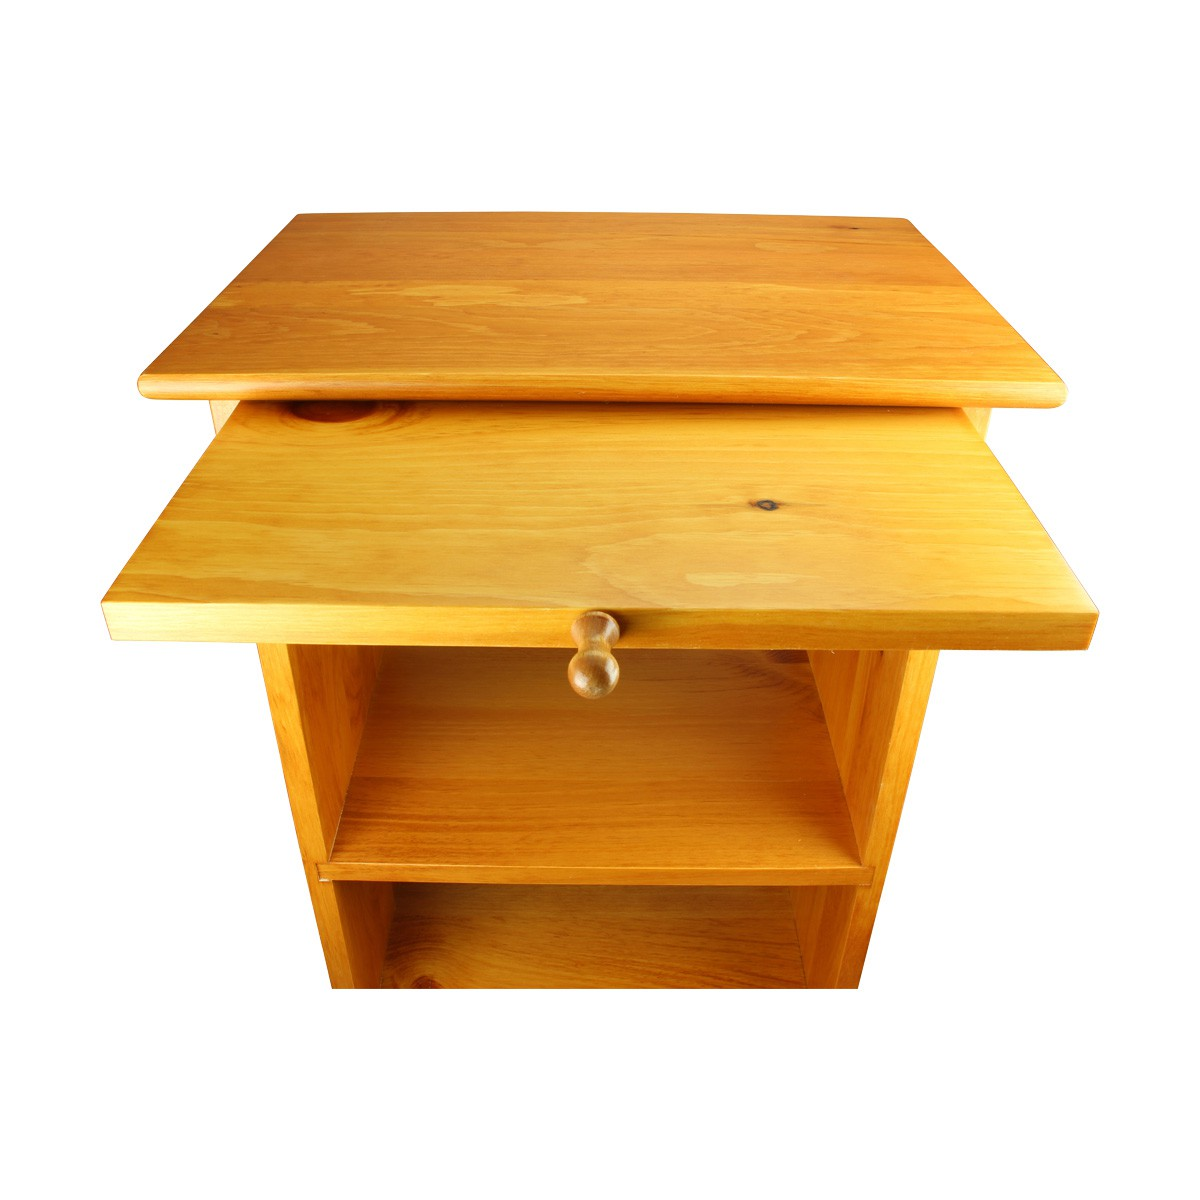 End Tables Bedroom Havard Heirloom Pine End Tables 29.5 Inches Pine Wood Wooden End Side Storage Tables end tables bedroom End Tables Living Room